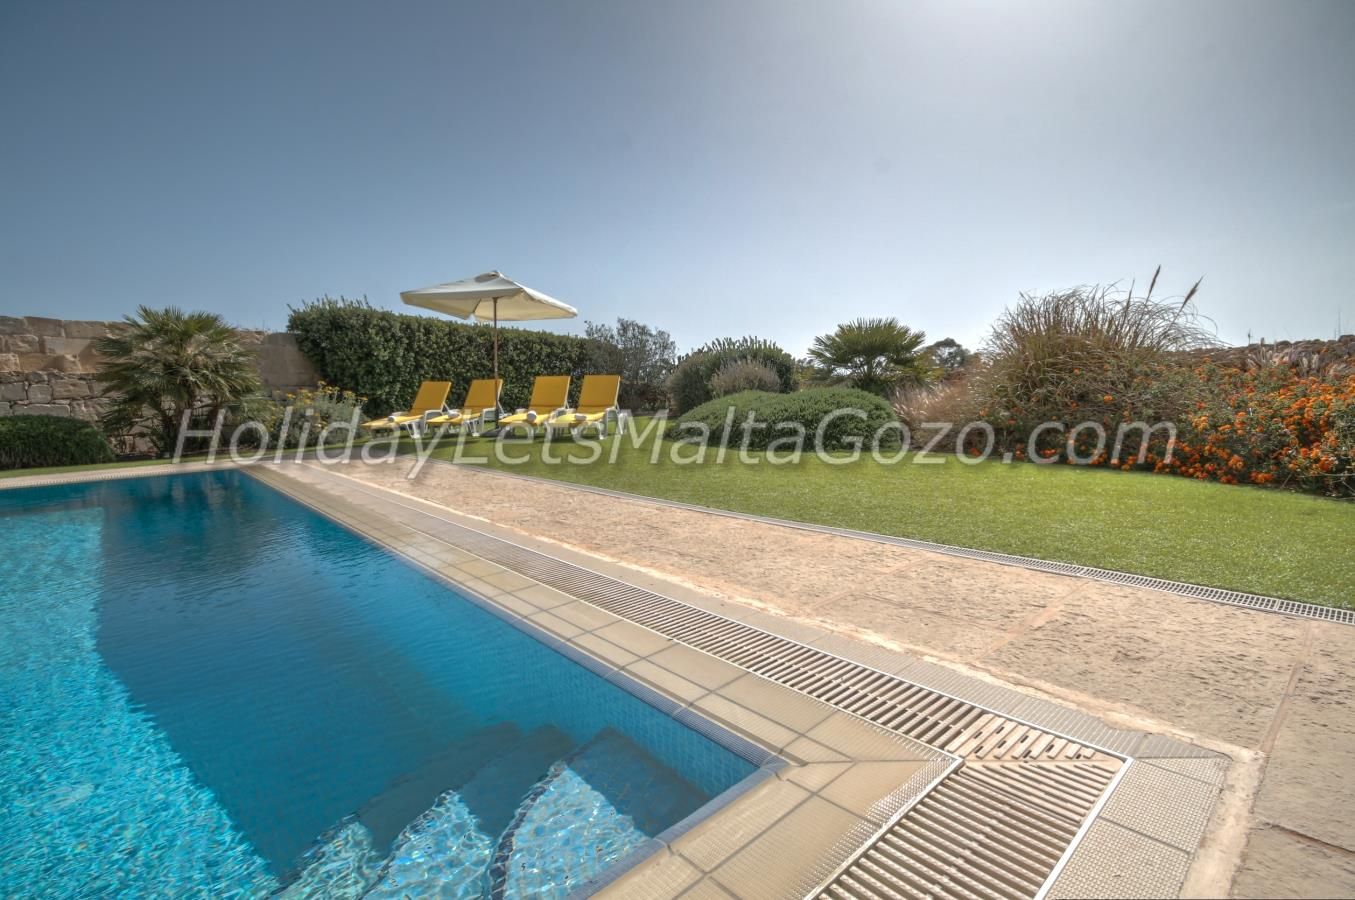 Pool deck/garden with sun loungers